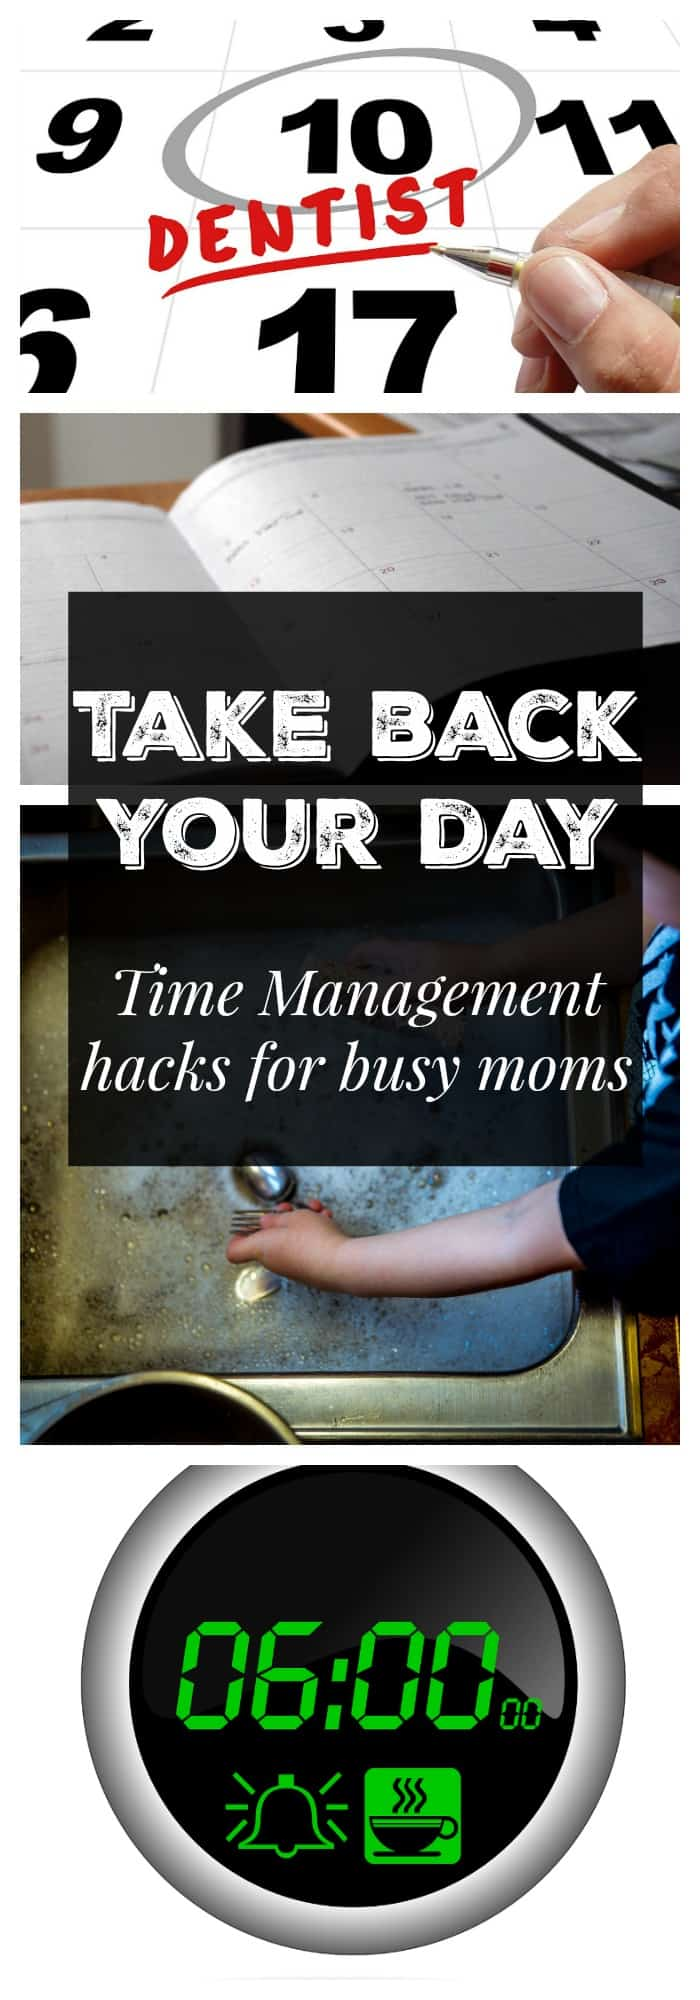 take-back-your-day-time-management-hacks-for-busy-moms-pin